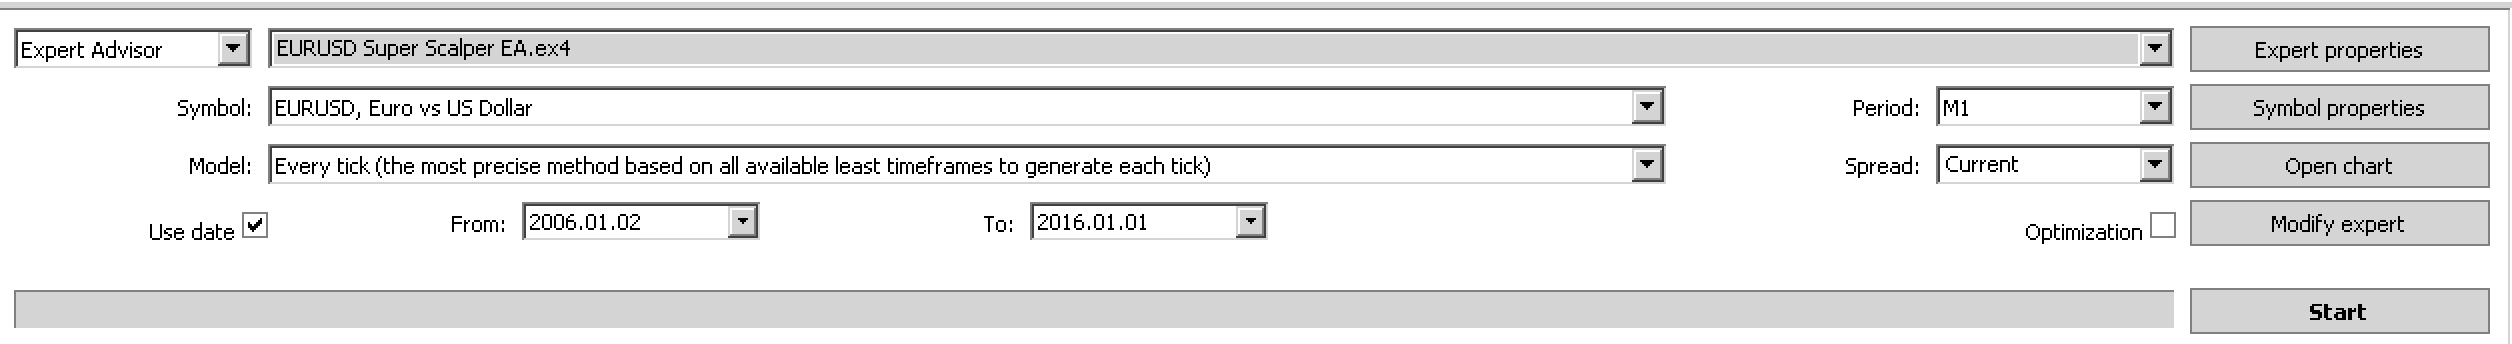 Backtest on MT4 - Insert Your Test Settings